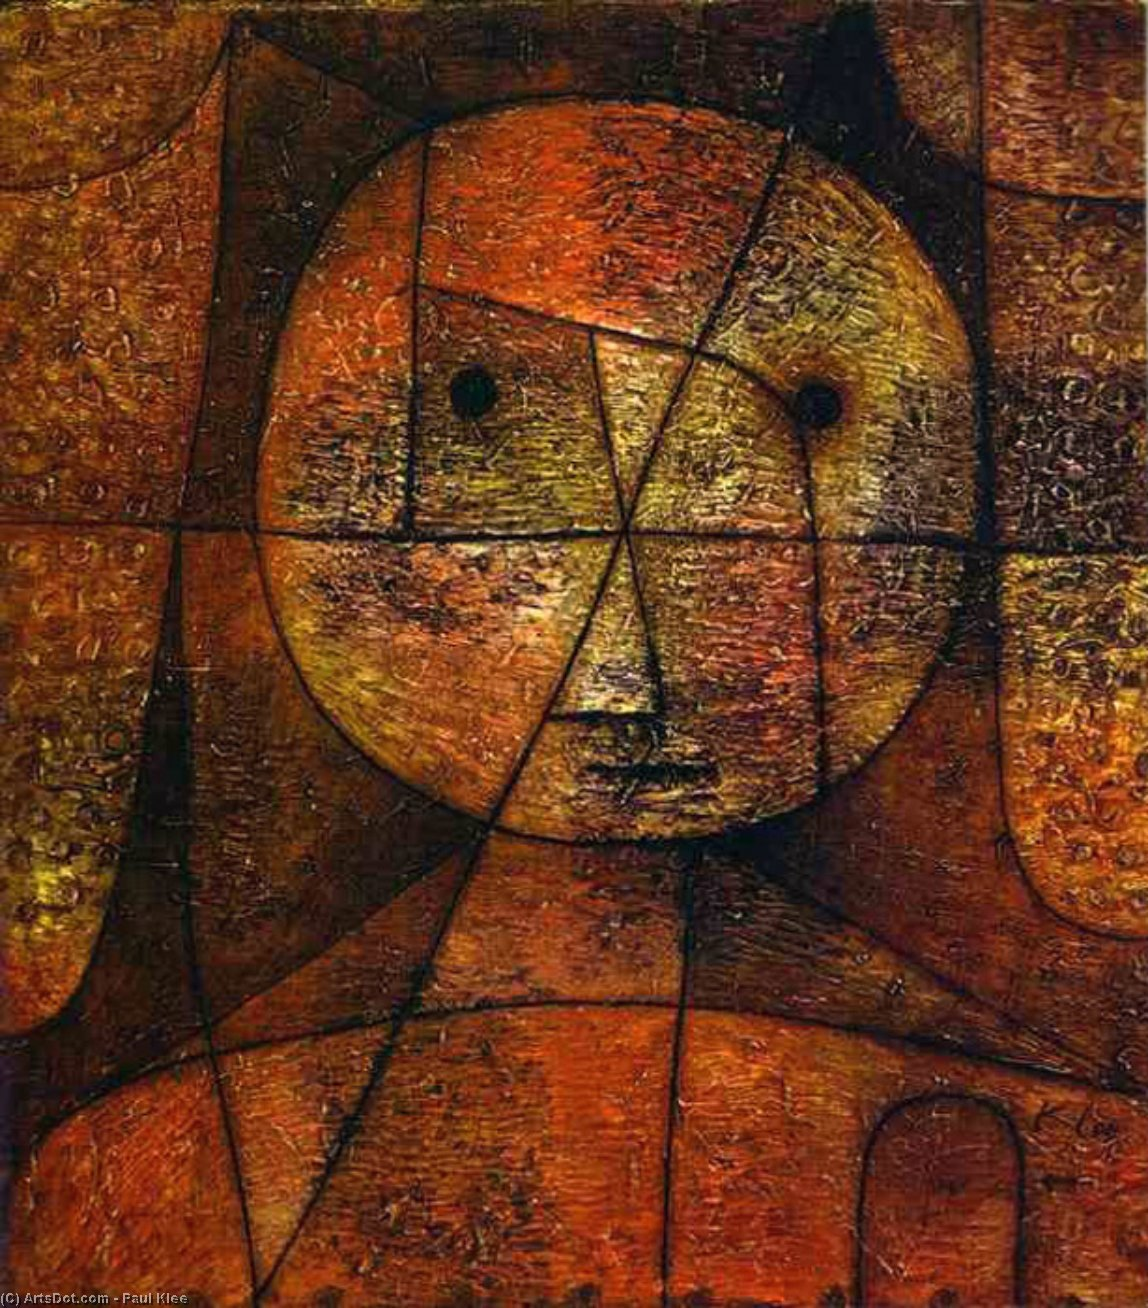 a biography of paul klee the swiss painter and graphic artist Timeline: the 20th century a swiss-born painter and graphic artist whose personal, often gently humorous works are replete with allusions to dreams, music, and poetry, paul klee, b dec 18, 1879, d.